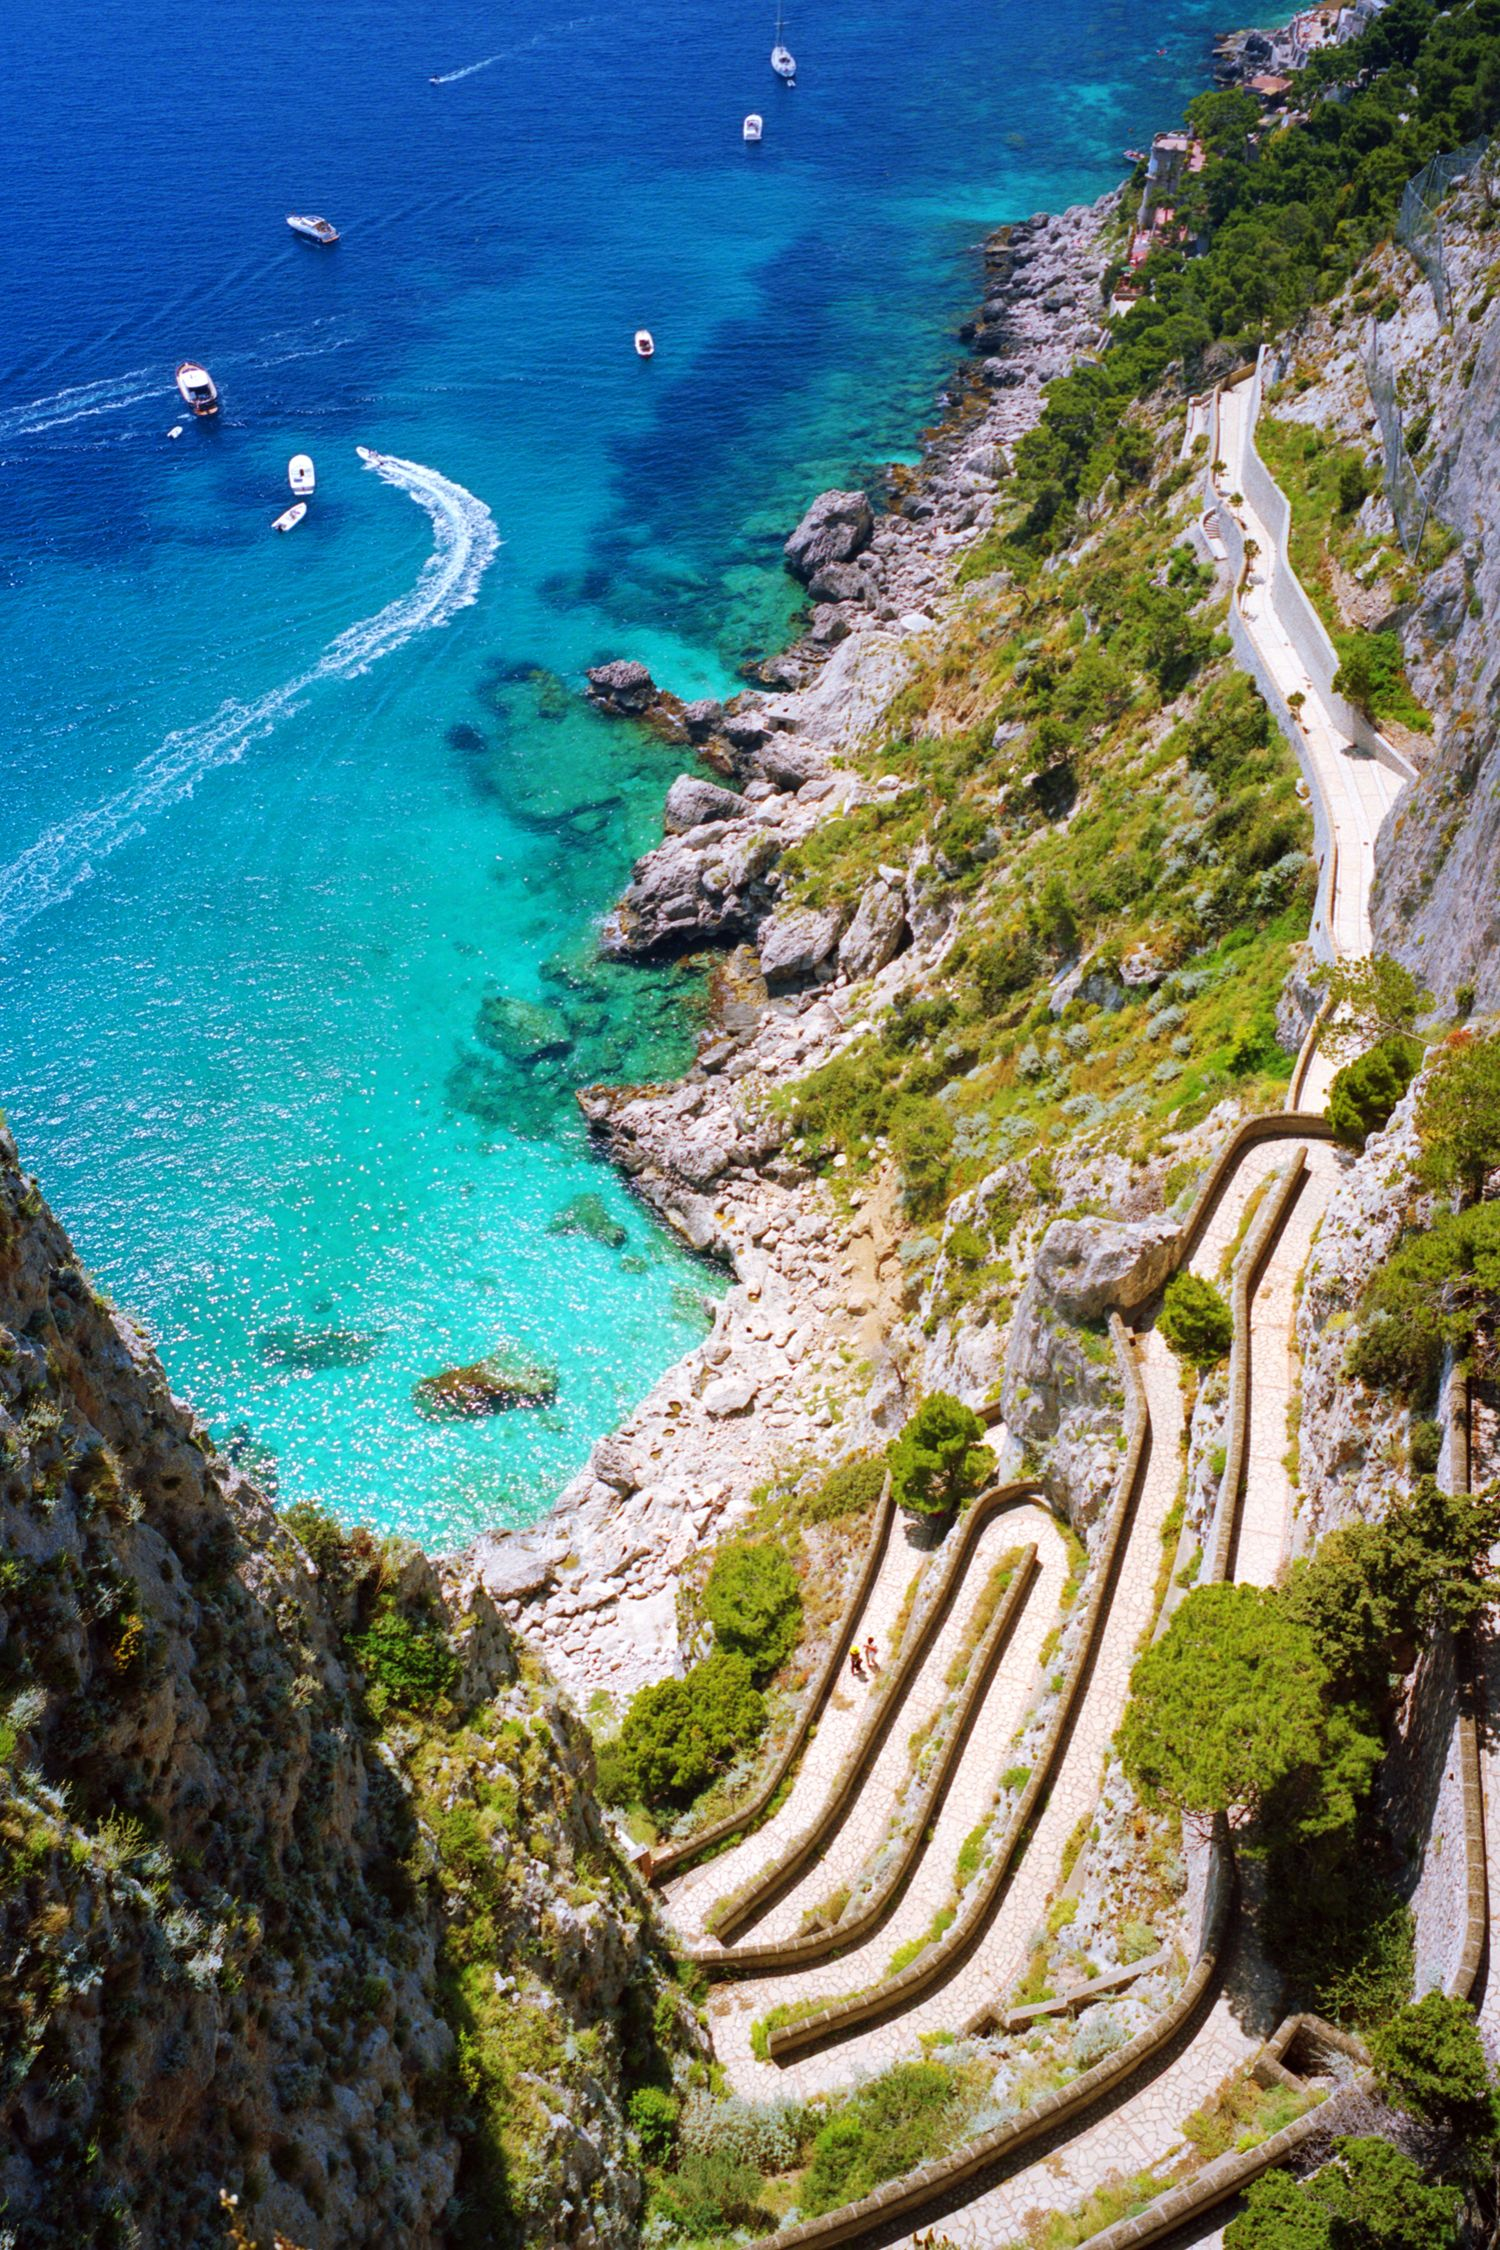 <p>Located just off the Amalfi Coast, the entire island of Capri is full of picturesque spots. To capture this iconic shot of rocky cliffs meeting the sea, head to the Augustus Gardens where this switchback path leads down to the Marina Piccola.</p>